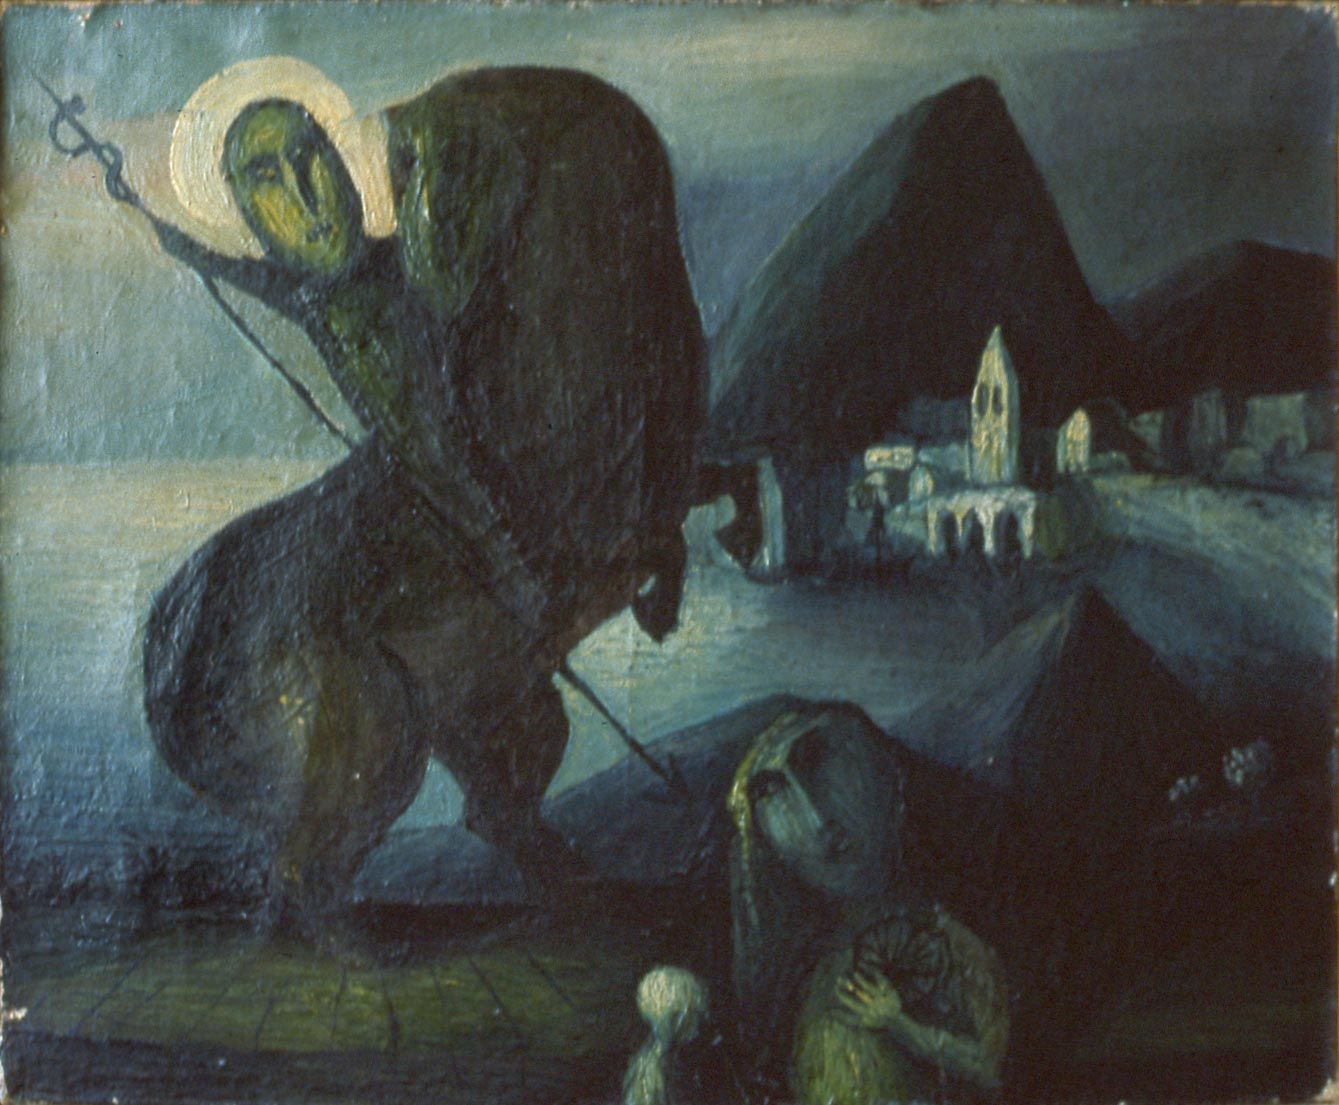 Dado: Saint Georges, 1950